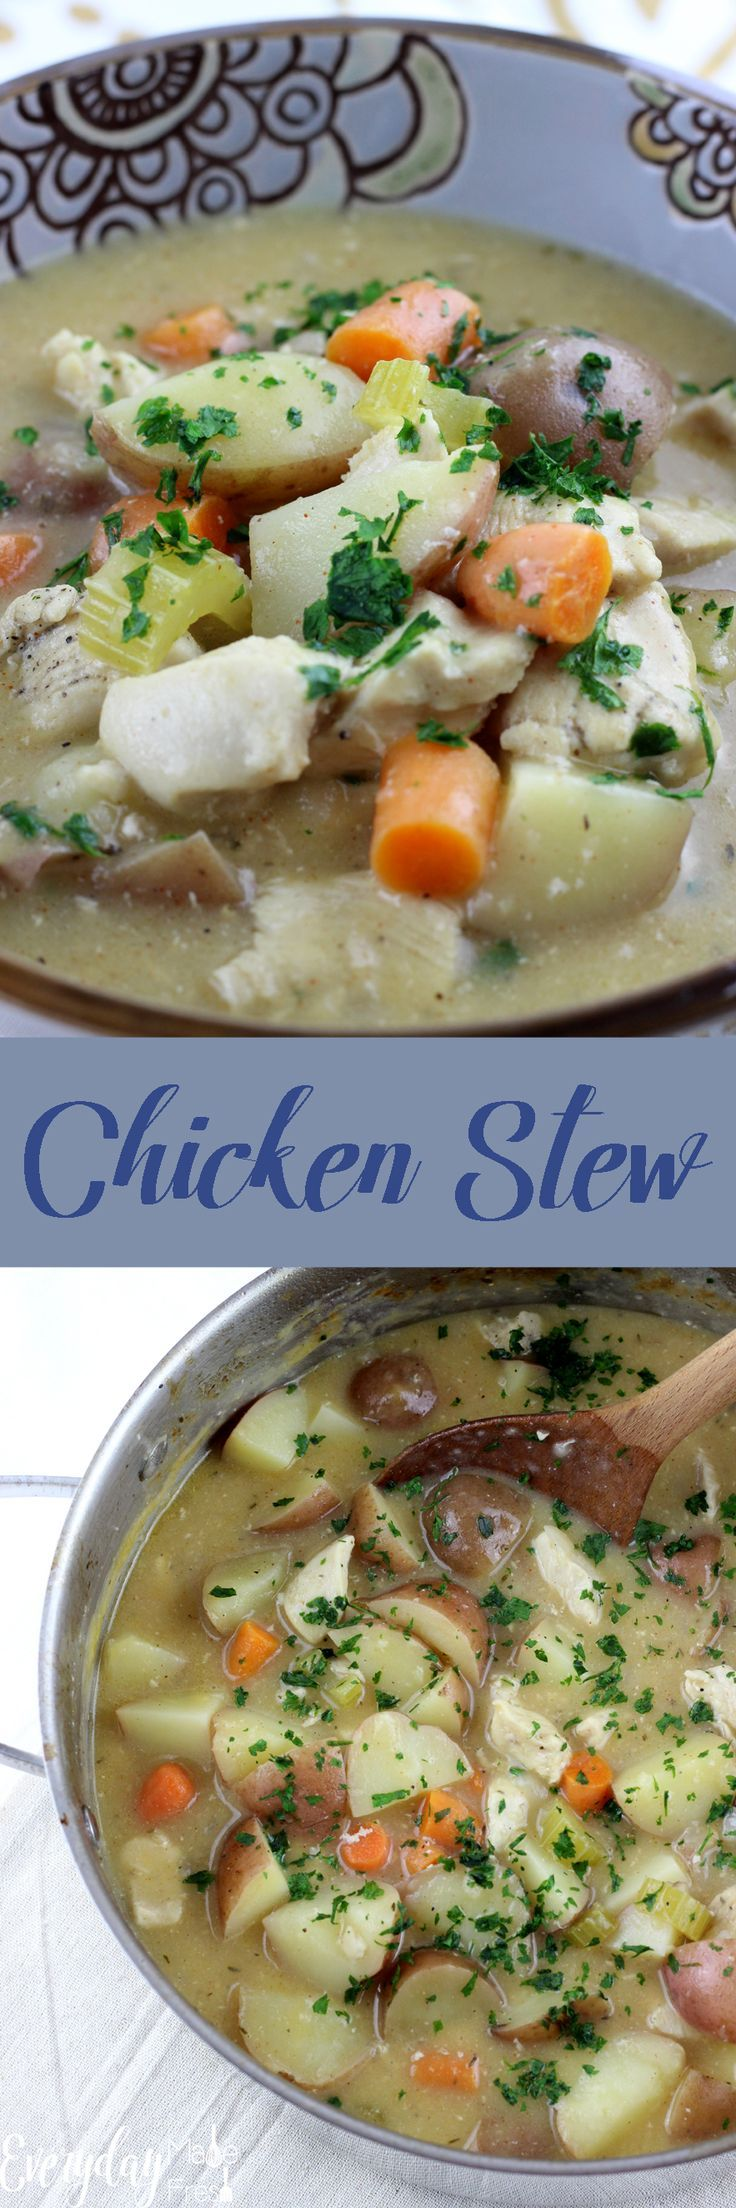 Warm and hearty, this Chicken Stew is loaded with carrots, potatoes, celery, white wine, and chunks of chicken! | EverydayMadeFresh.com http://www.everydaymadefresh.com/chicken-stew/